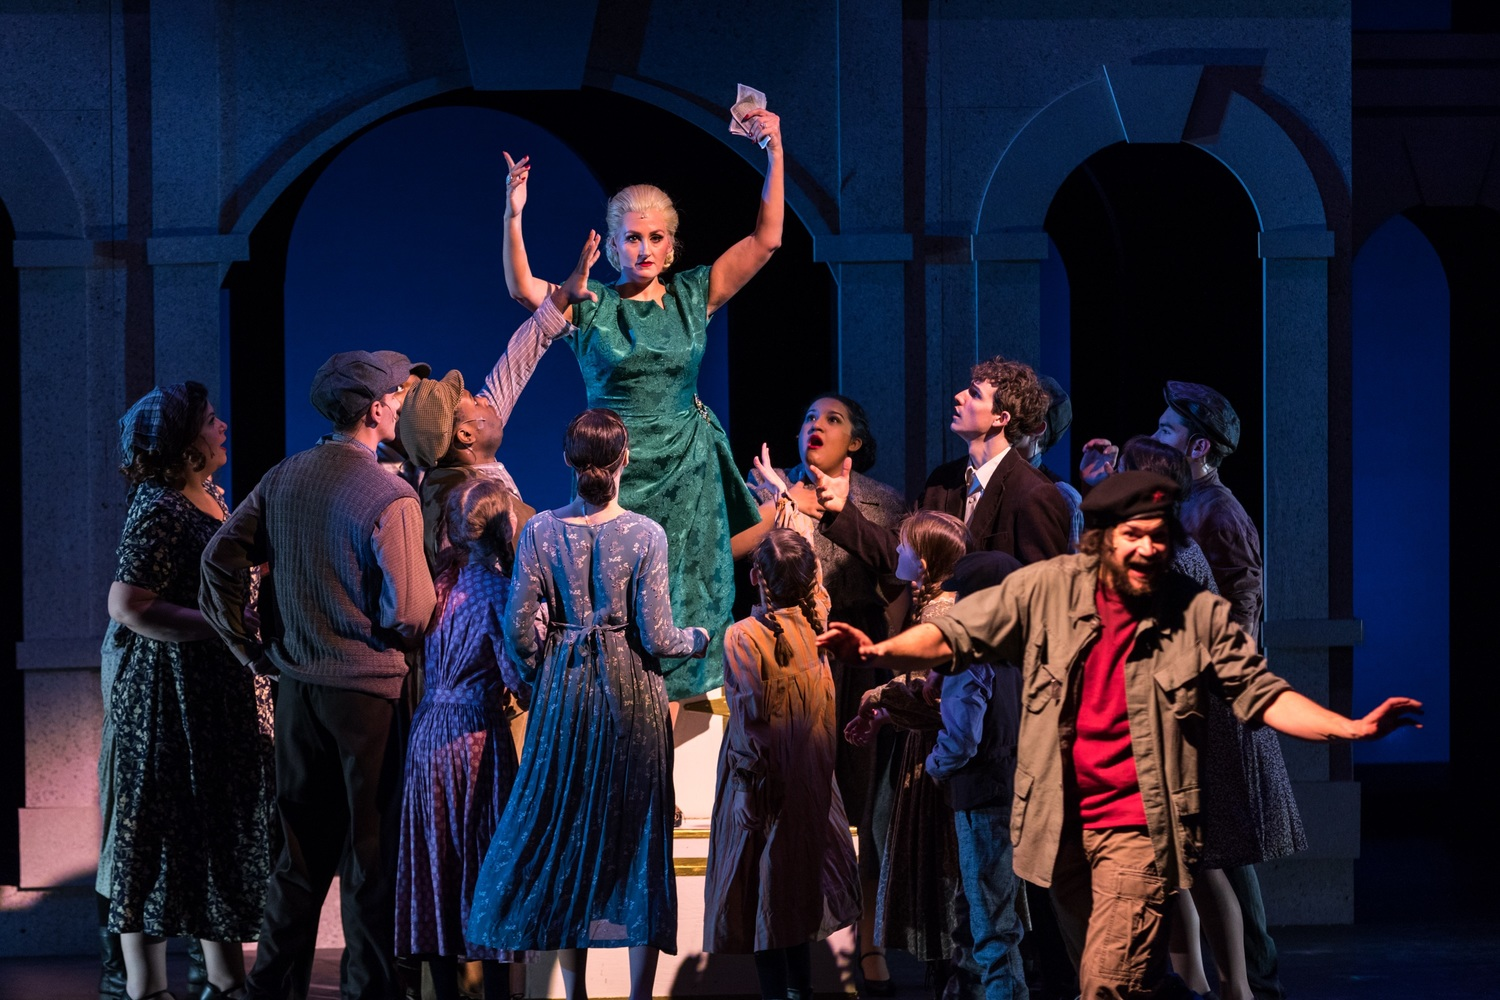 BWW Review: Lucia Stetson Brings a Regal, Enigmatic EVITA to CPCC